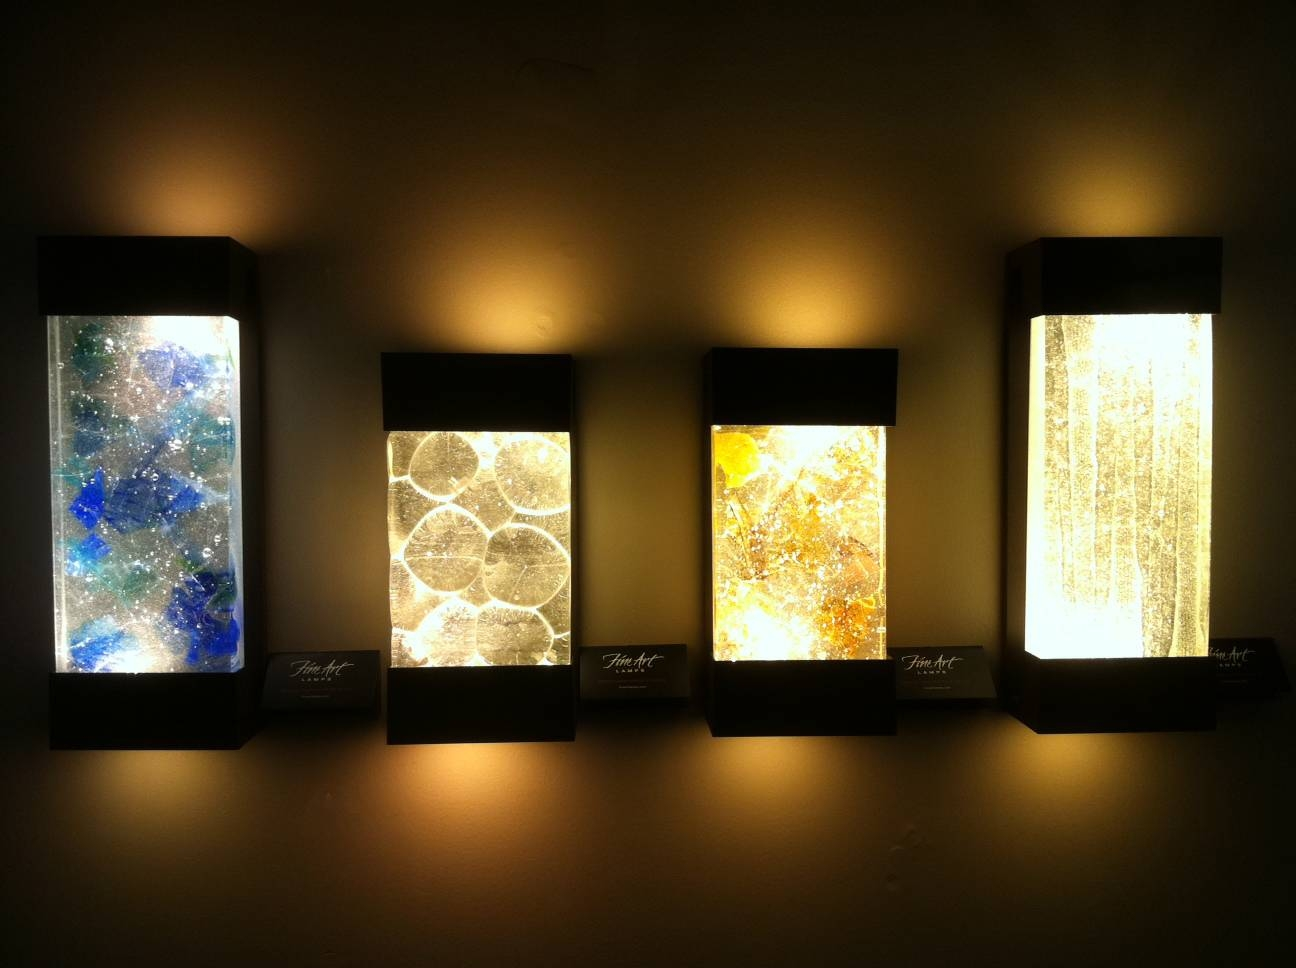 Wall Art With Led Lights – The Art Of The Future | Warisan Lighting With Current Wall Art Lighting (View 20 of 20)